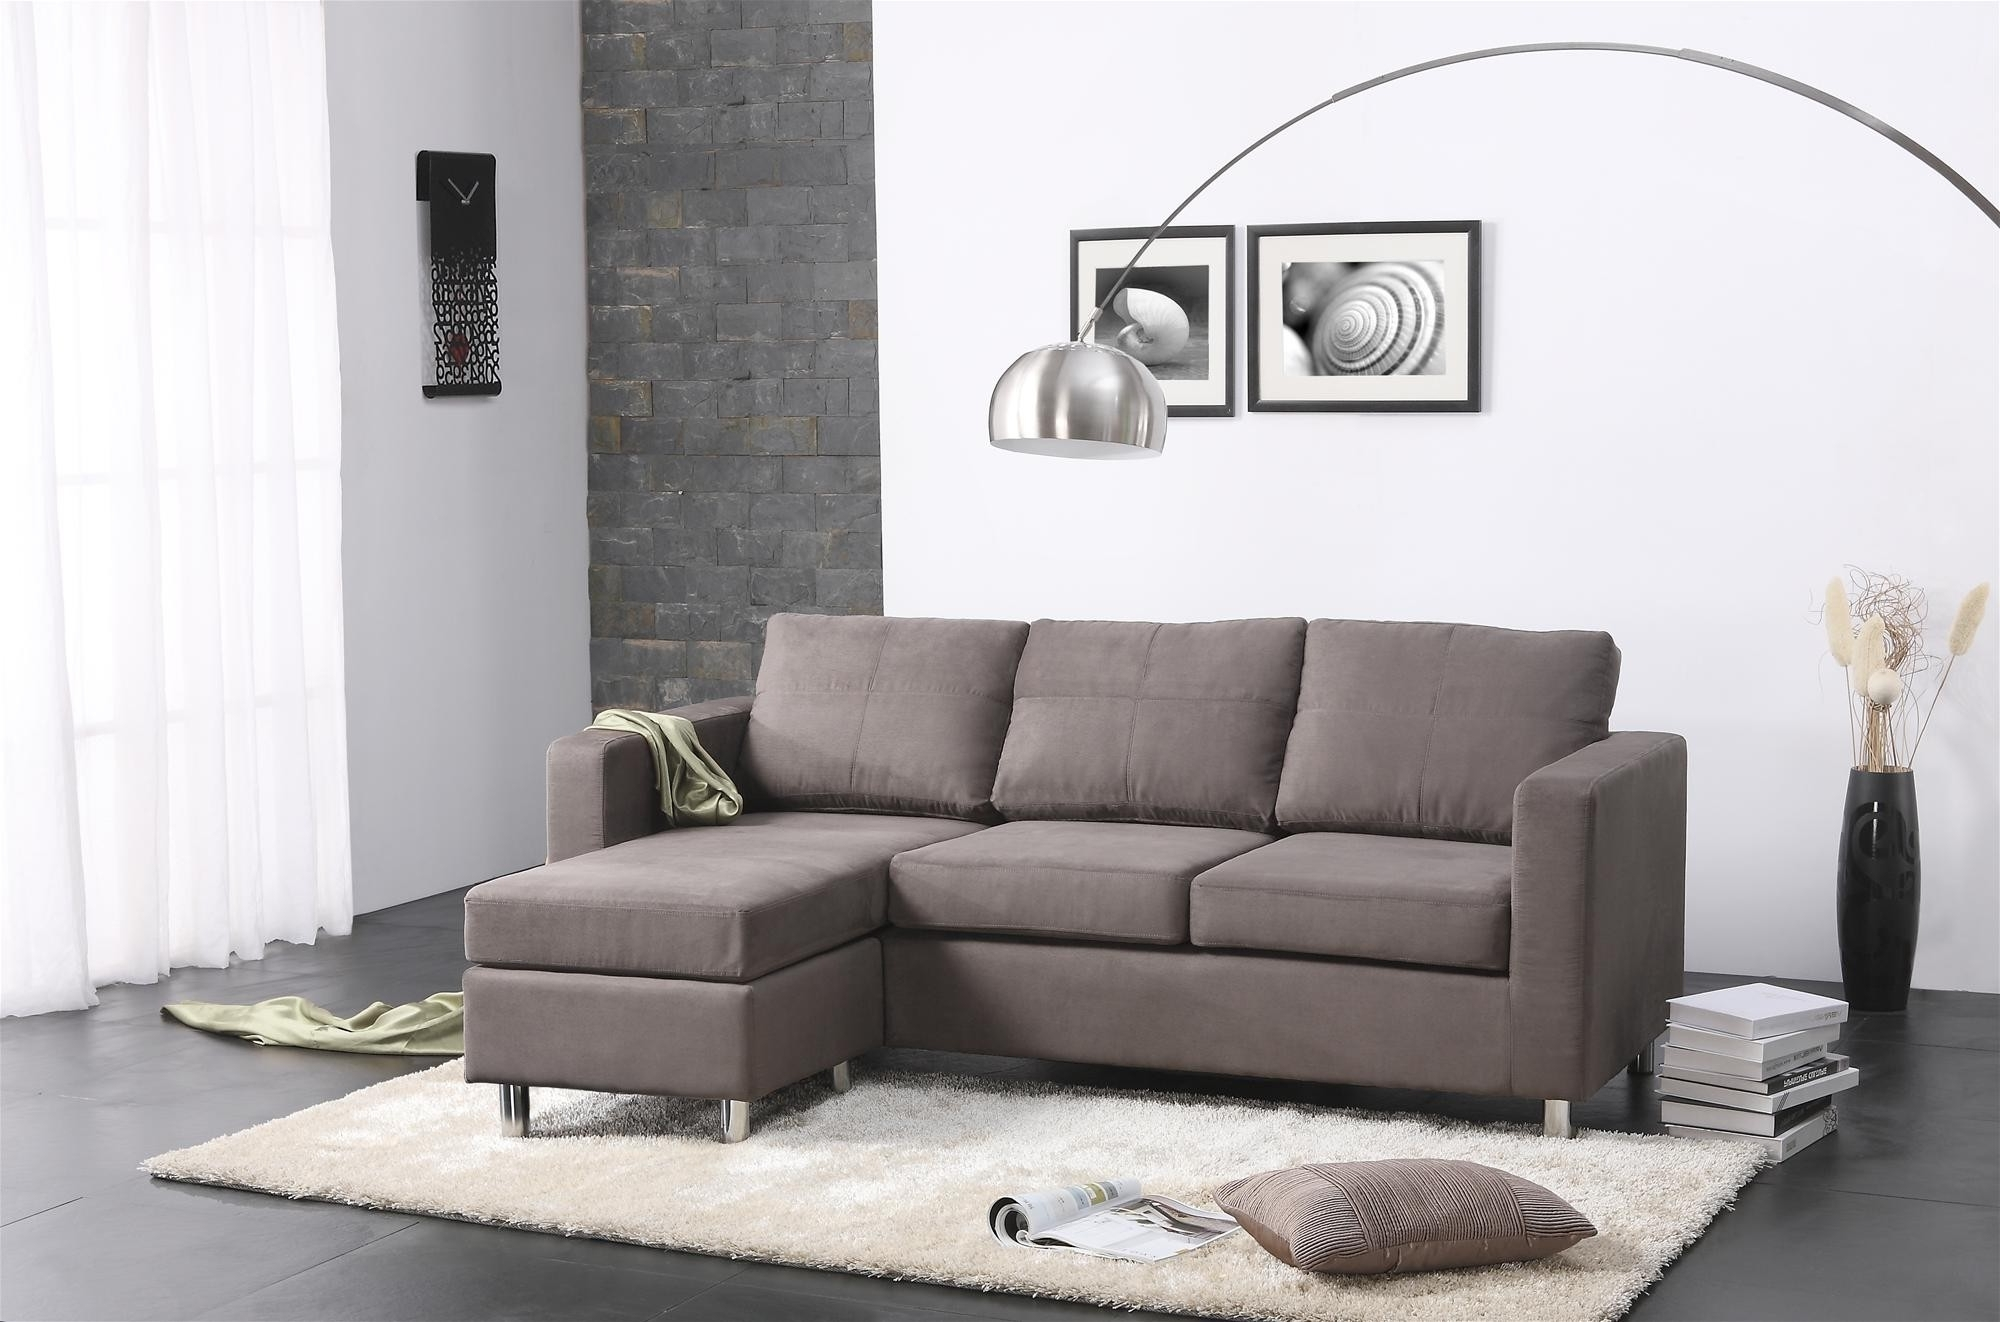 Popular Small Sectional Sofas With Chaise Lounge Inside Awesome Find Small Sectional Sofas For Small Spaces 25 On (View 7 of 15)